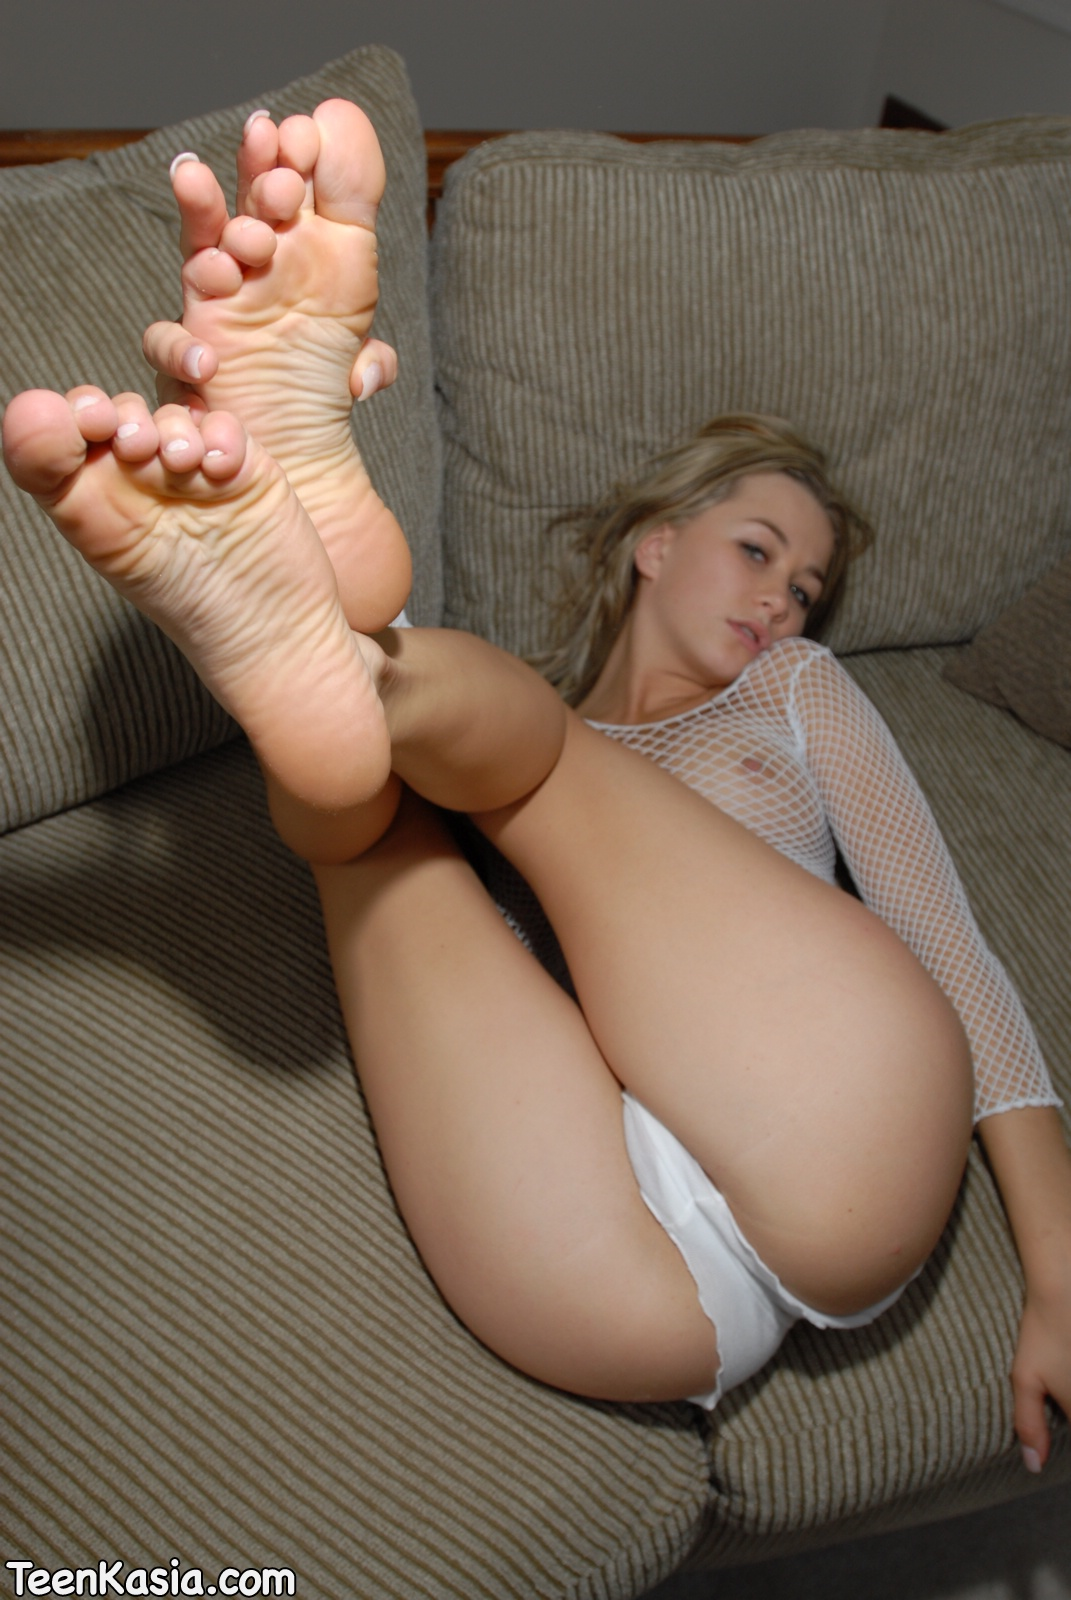 girls that are naked and sexy feet